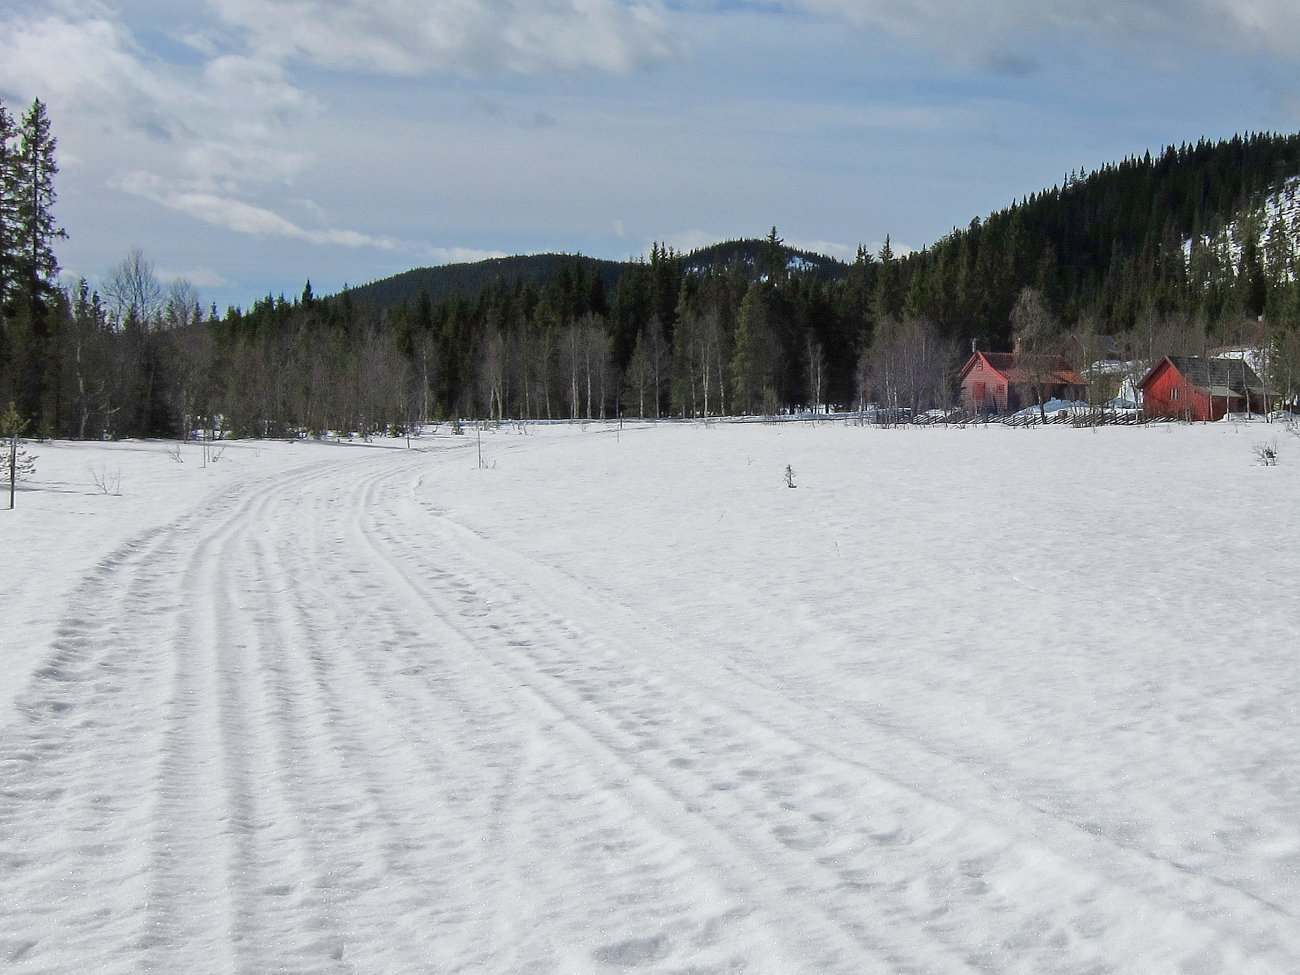 Ognillaberget